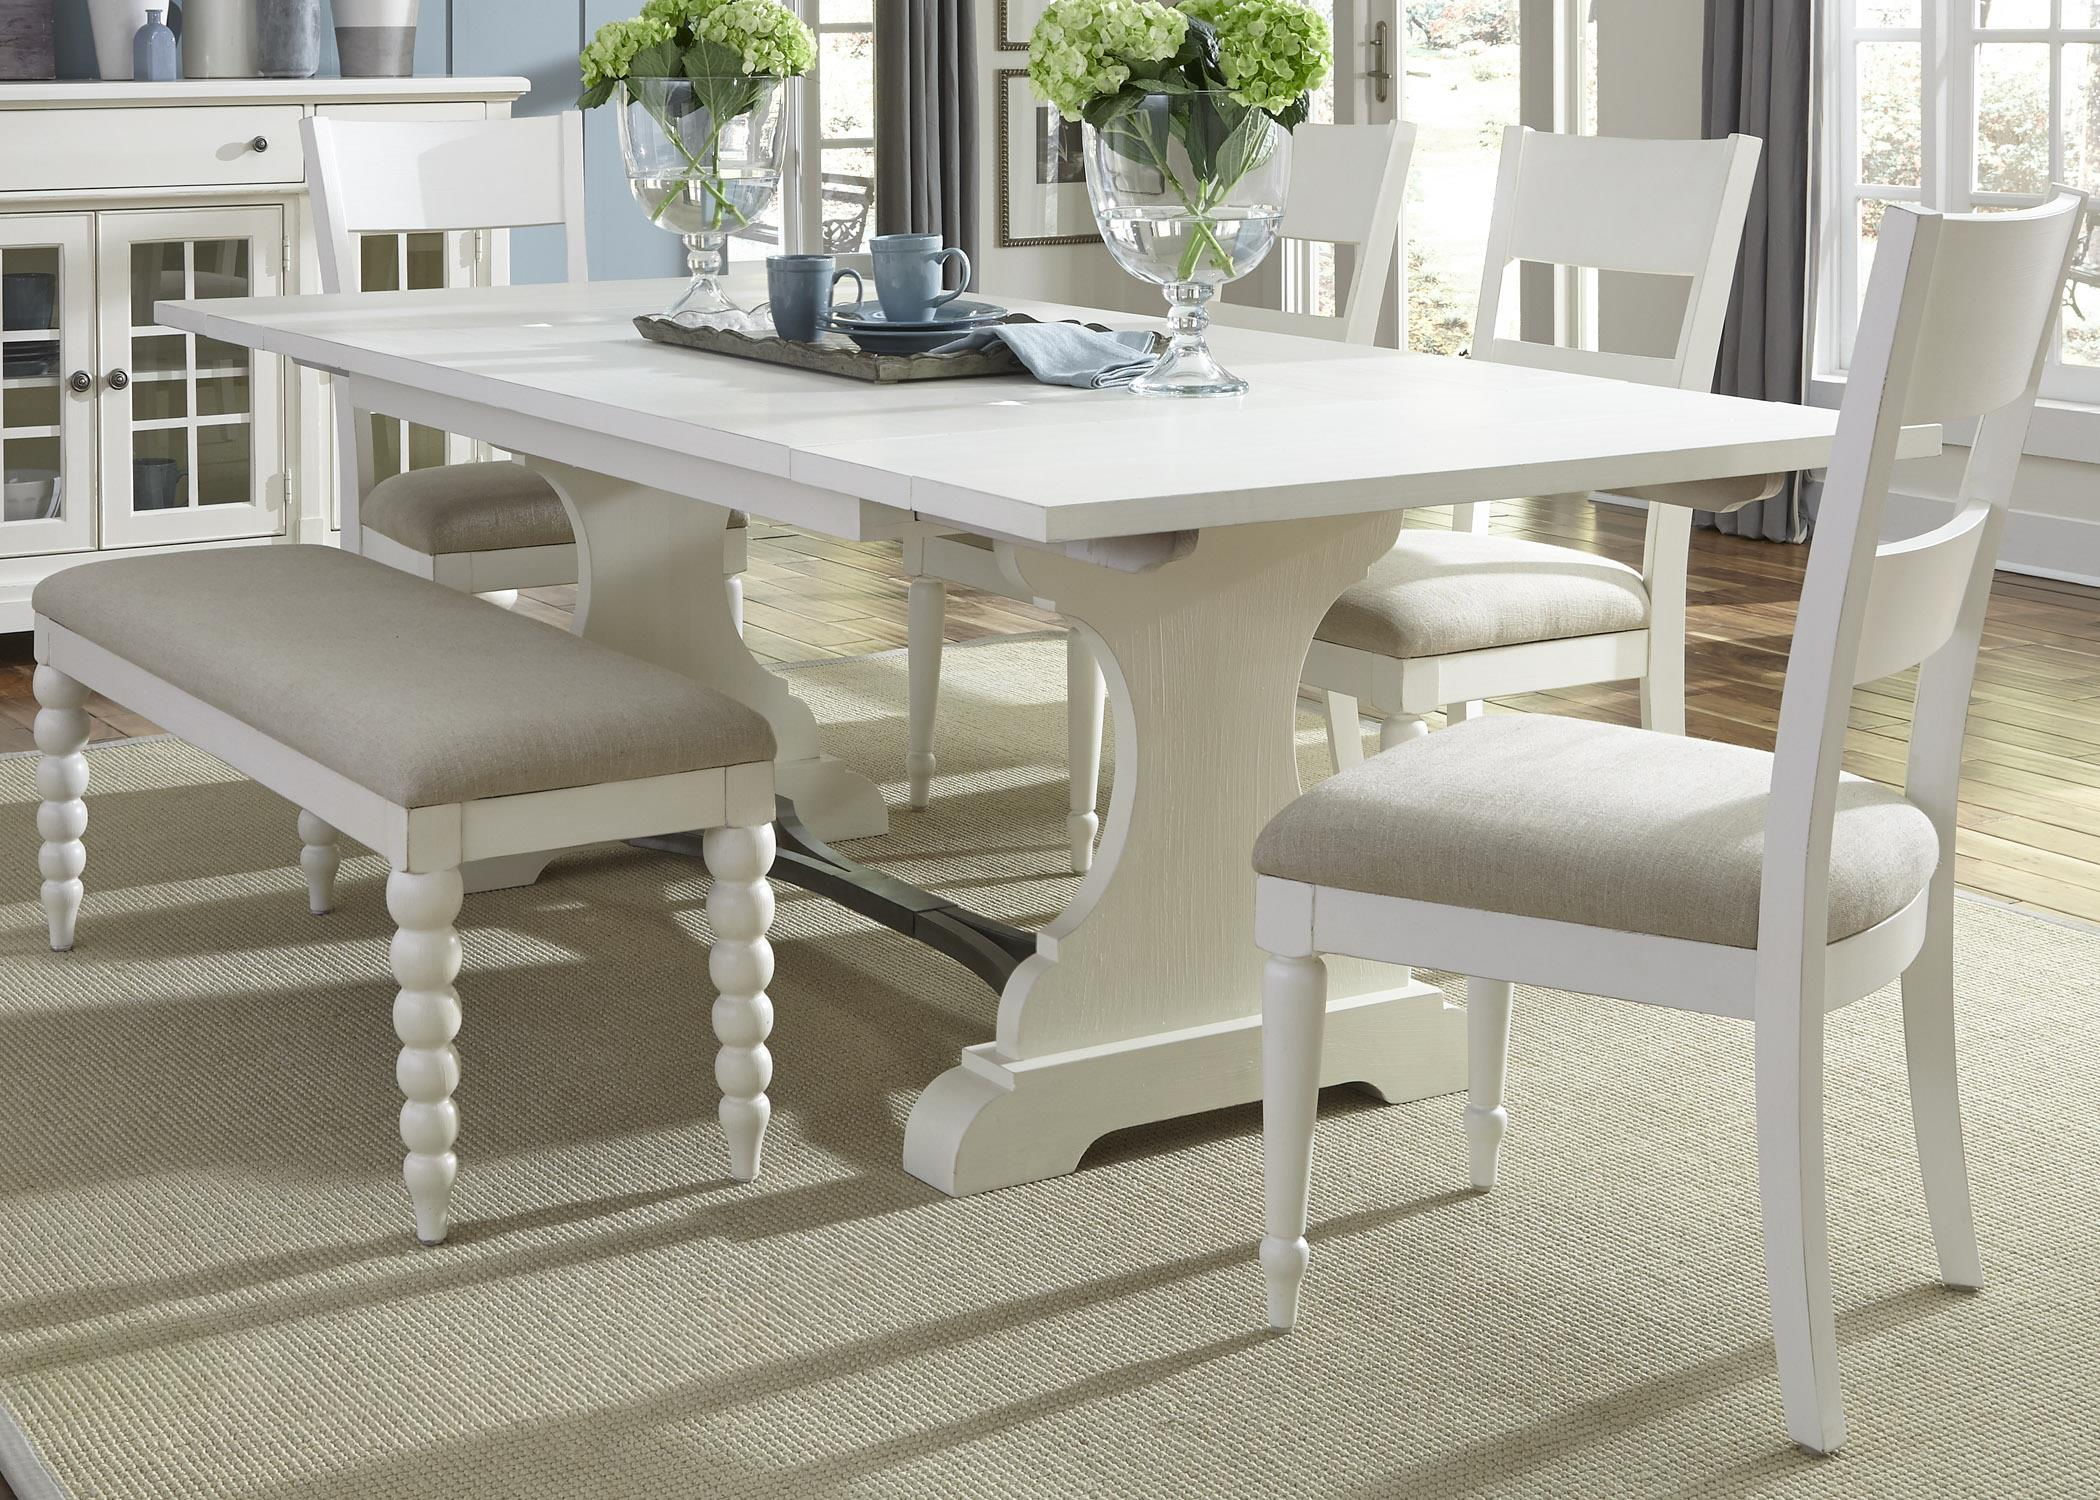 Liberty Furniture Harbor View Trestle Table and Chair Set - Item Number: 631-DR-6TRS